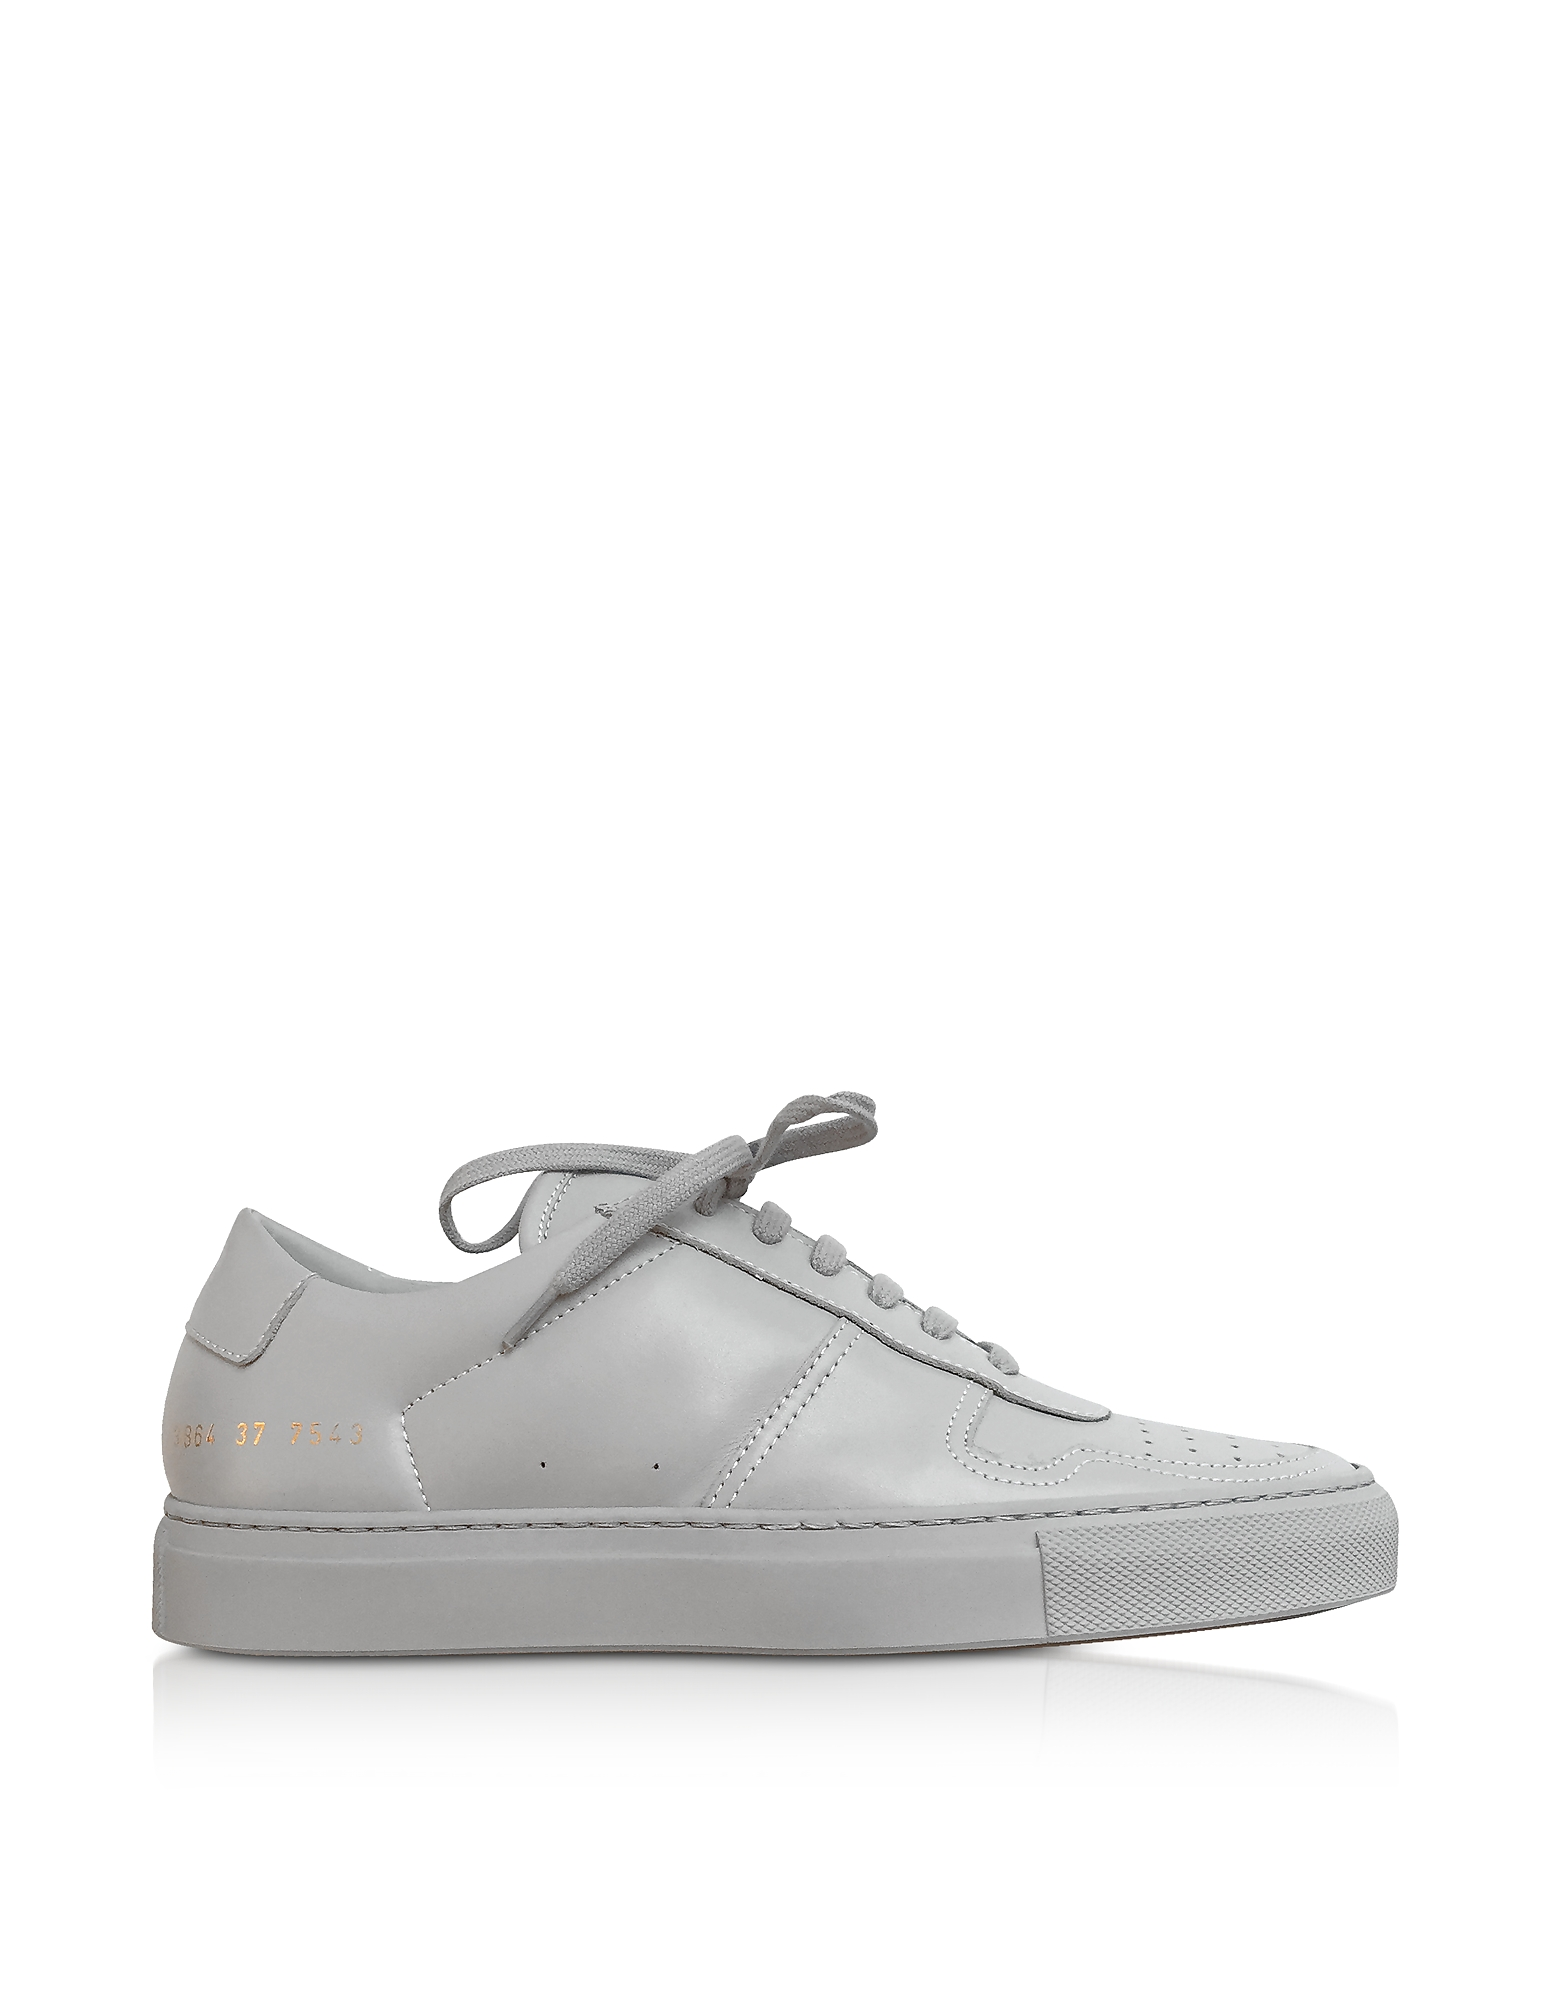 Bball Low Grey Leather Women's Sneakers